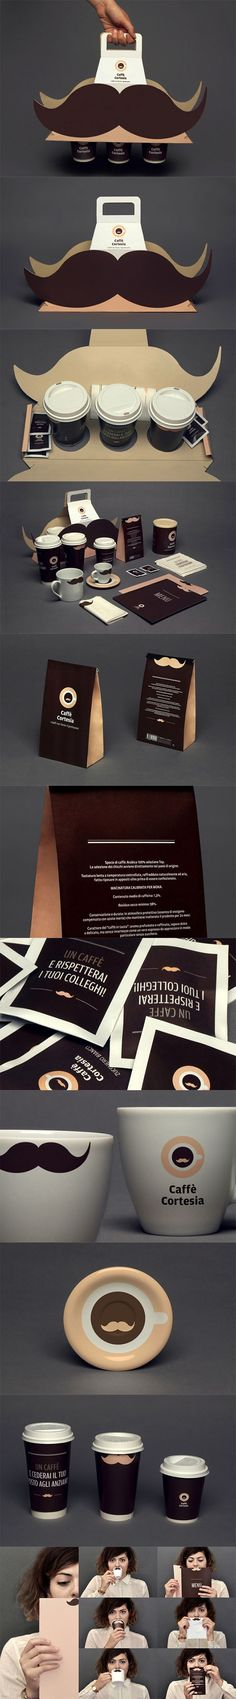 A most popular pin that just made the 500 club via Packaging of the World: Creative Package Design Archive and Gallery: Caffè Cortesia PD